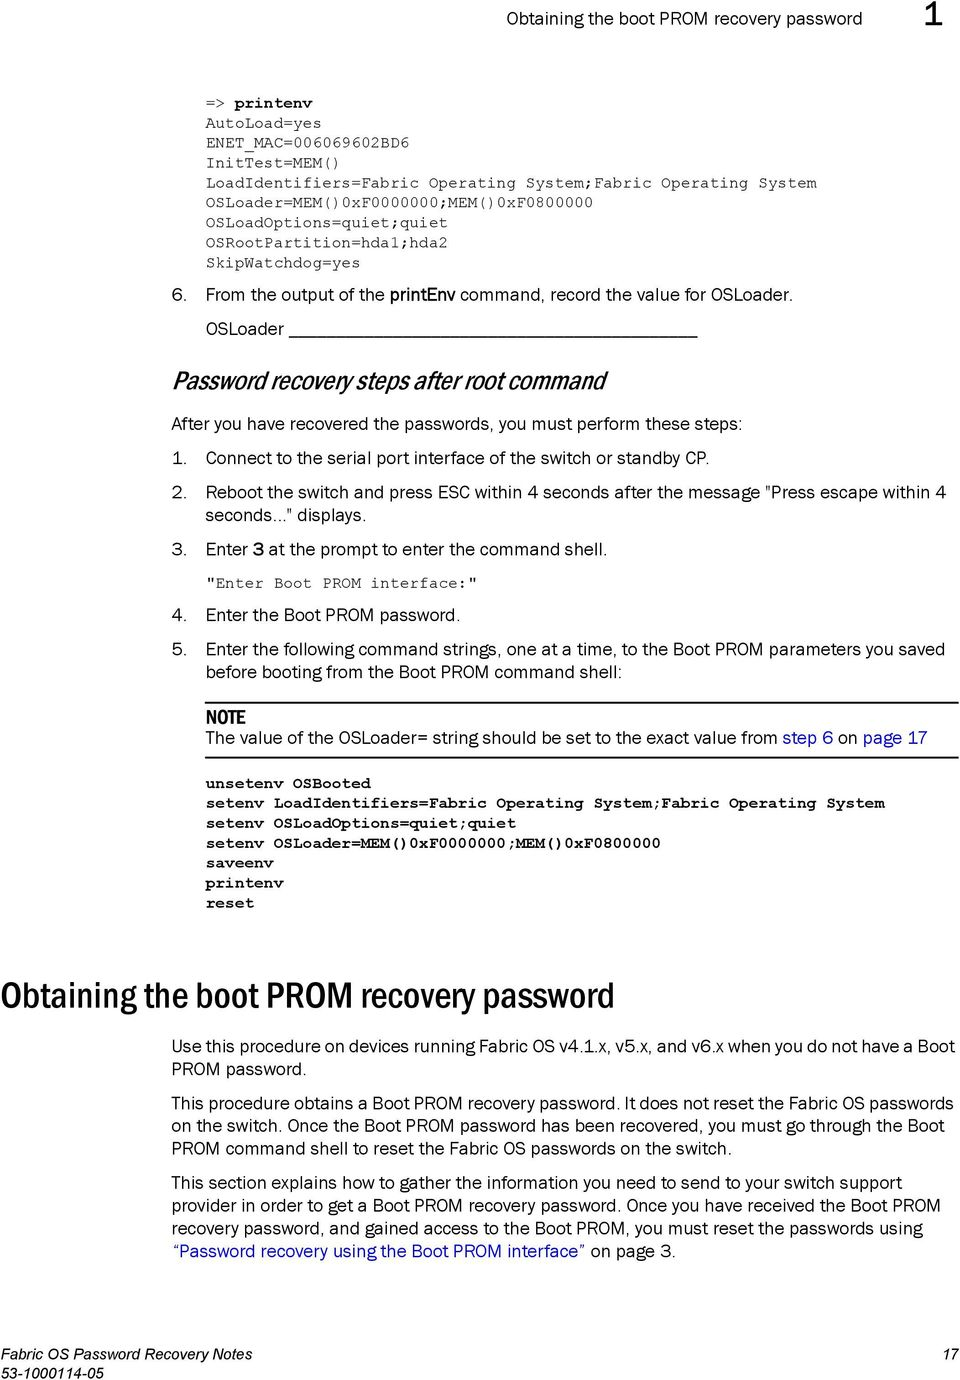 OSLoader Password recovery steps after root command After you have recovered the passwords, you must perform these steps: 1. Connect to the serial port interface of the switch or standby CP. 2.